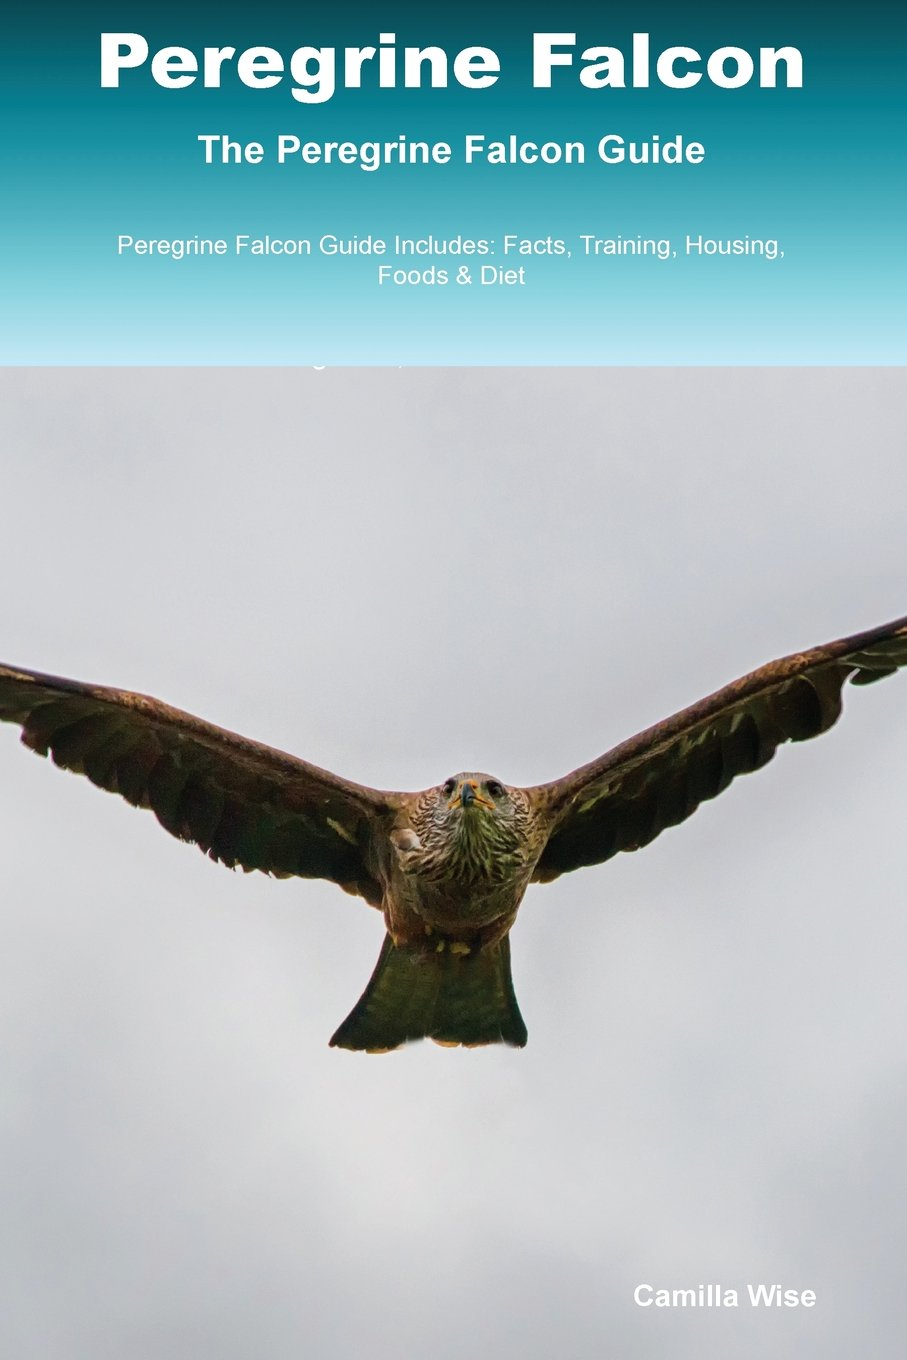 Peregrine Falcon The Peregrine Falcon Guide Peregrine Falcon Guide Includes: Facts, Training, Housing, Foods & Diet